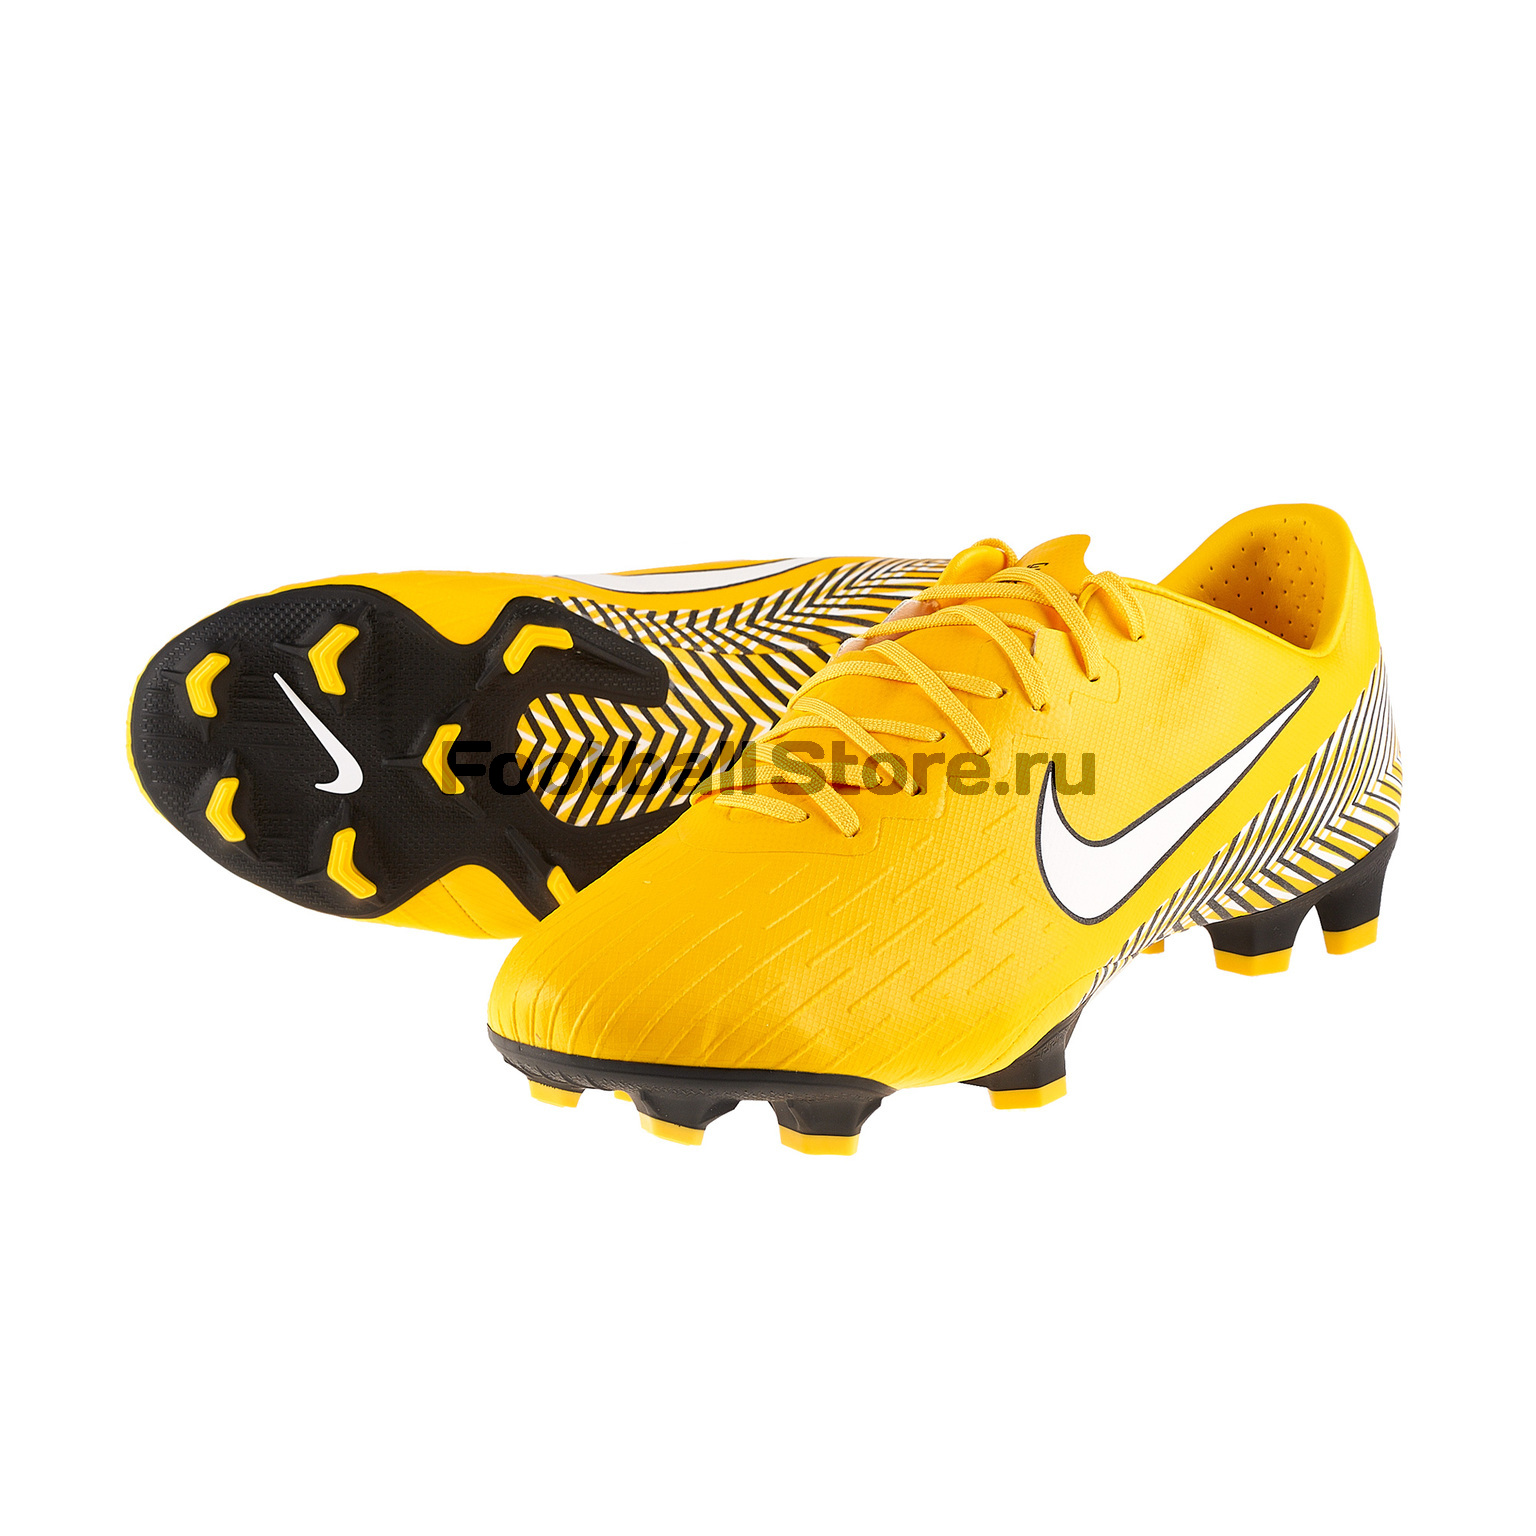 Бутсы Nike Vapor 12 Pro Neymar FG AO3123-710 бутсы nike шиповки nike jr tiempox legend vi tf 819191 018